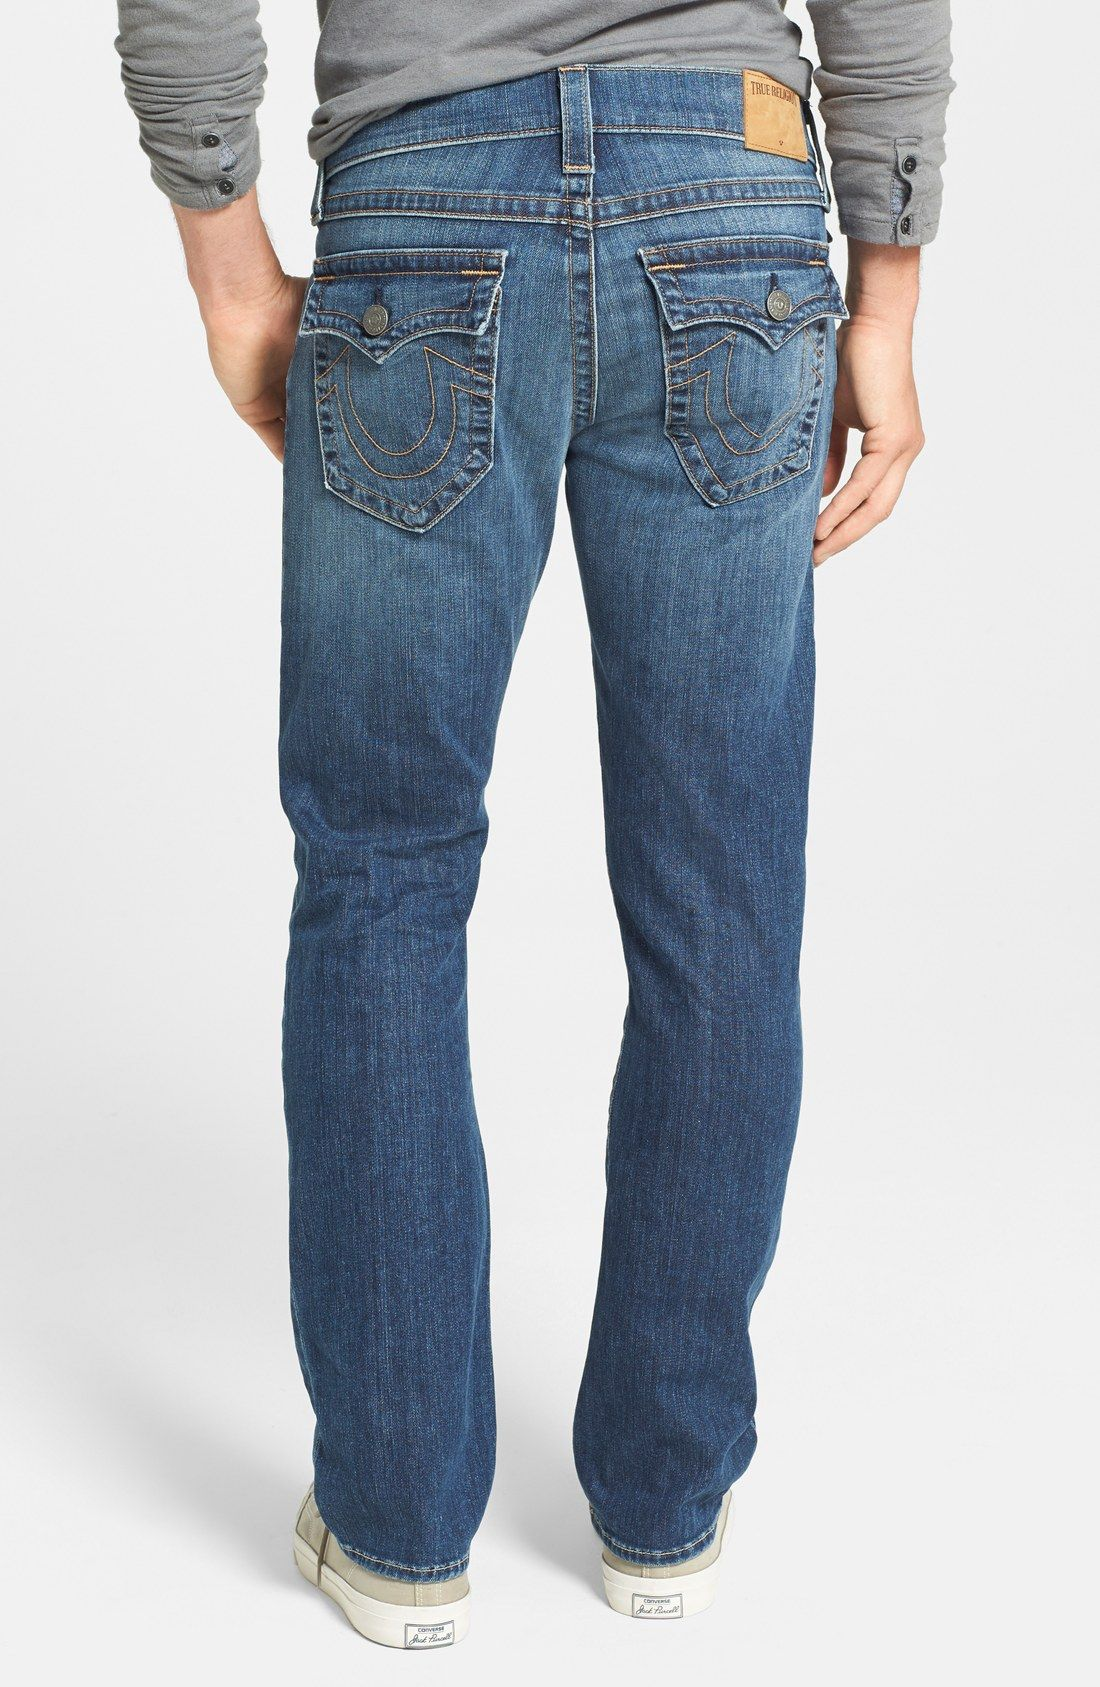 deded1b3591 MADE IN USA OF IMPORTED FABRIC True Religion Brand Jeans  Ricky  Relaxed  Straight Fit Jeans (Lakeview)